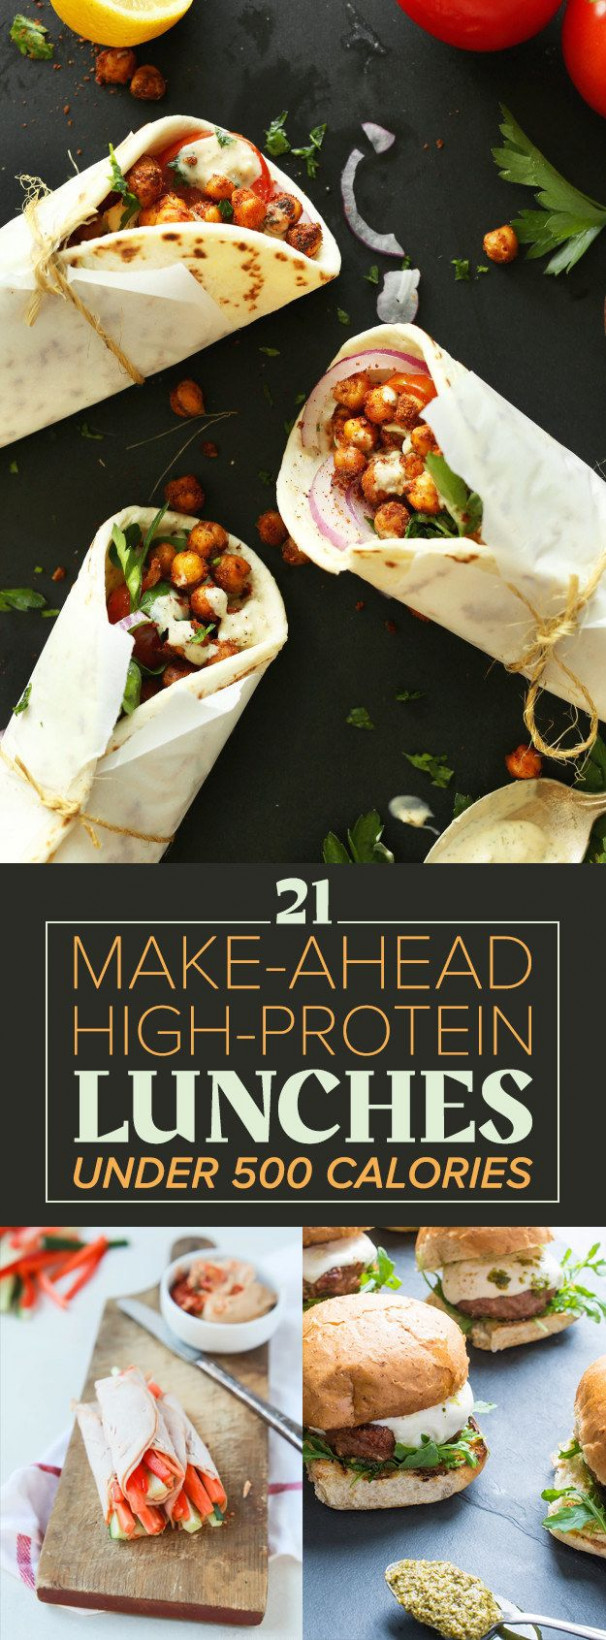 21 High-Protein Lunches Under 500 Calories | Eating Well ...